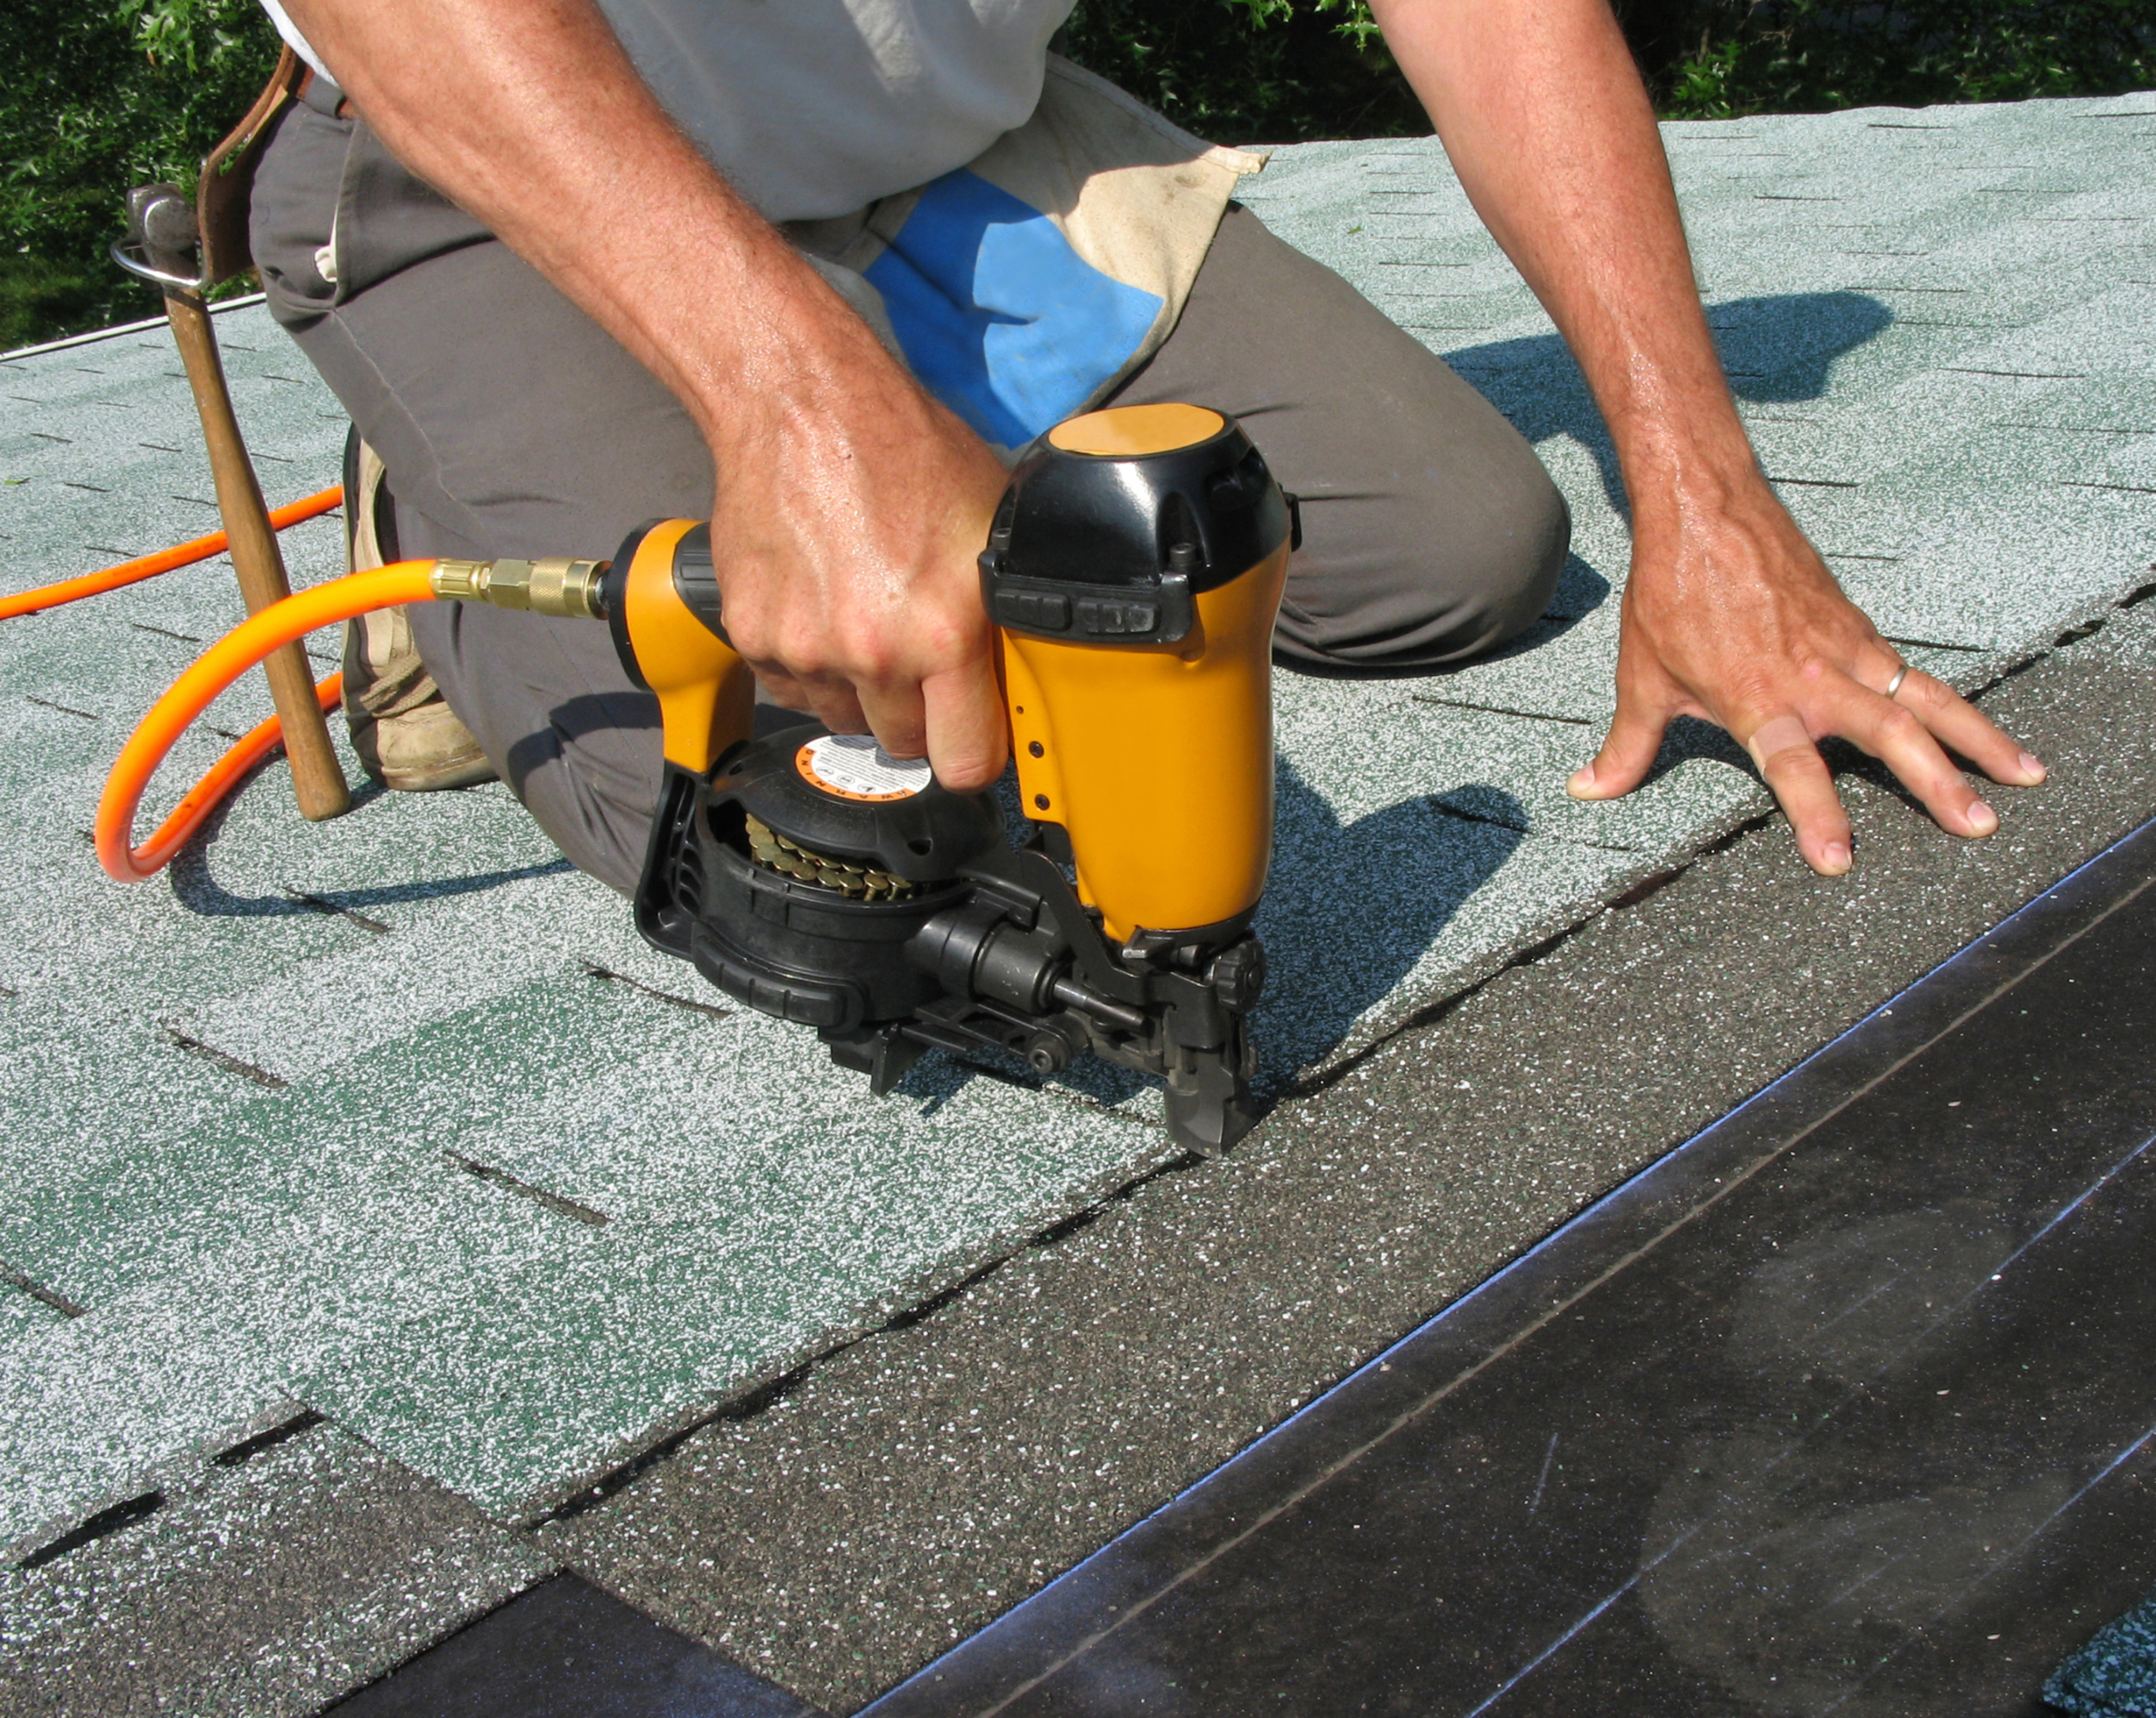 Why Should You Think About Installing Solar Panels on Your Home Roof?